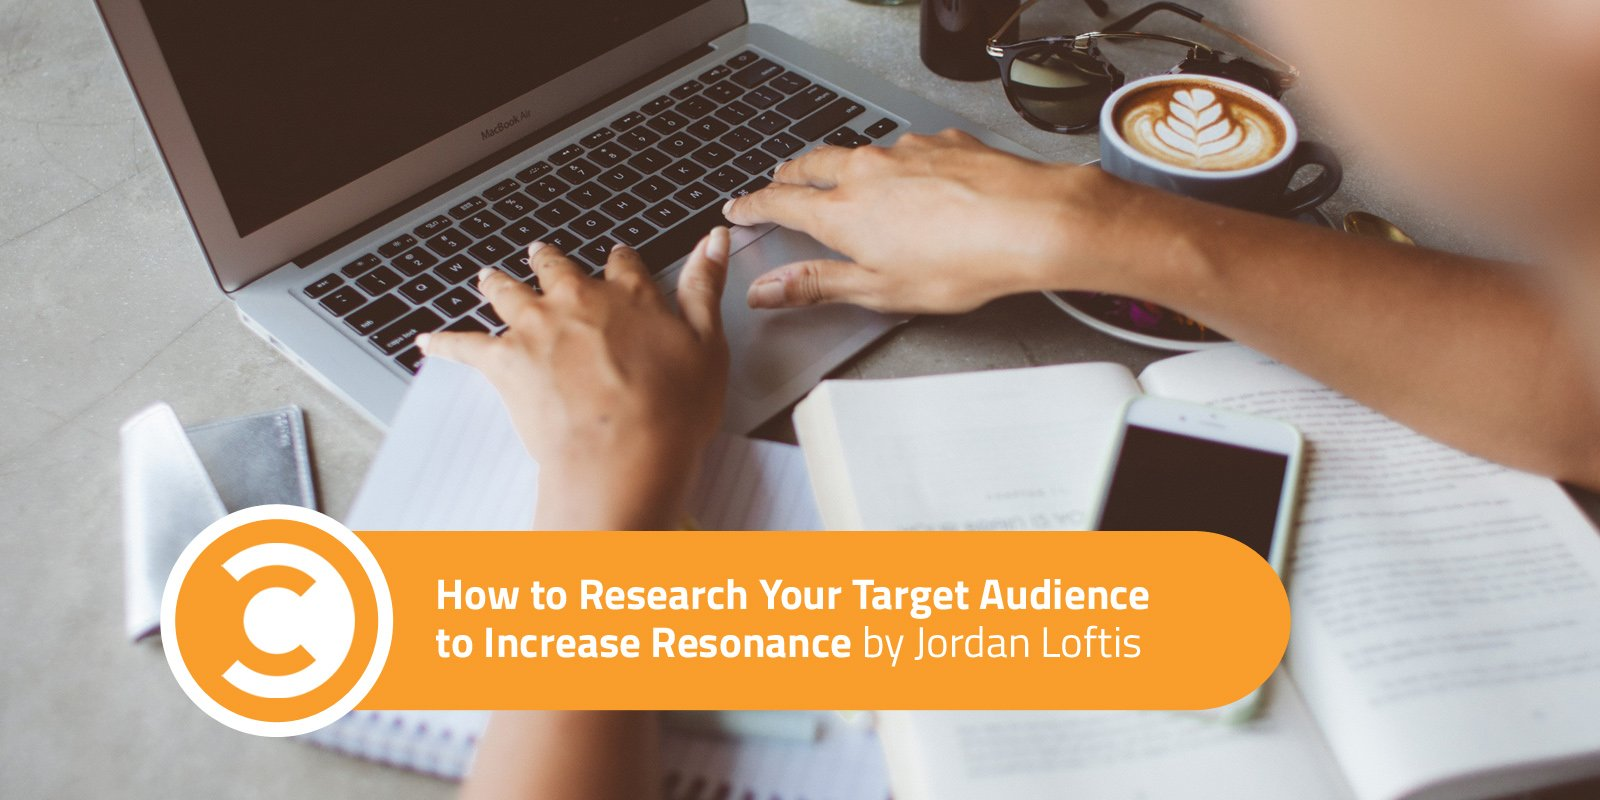 How to Research Your Target Audience to Increase Resonance